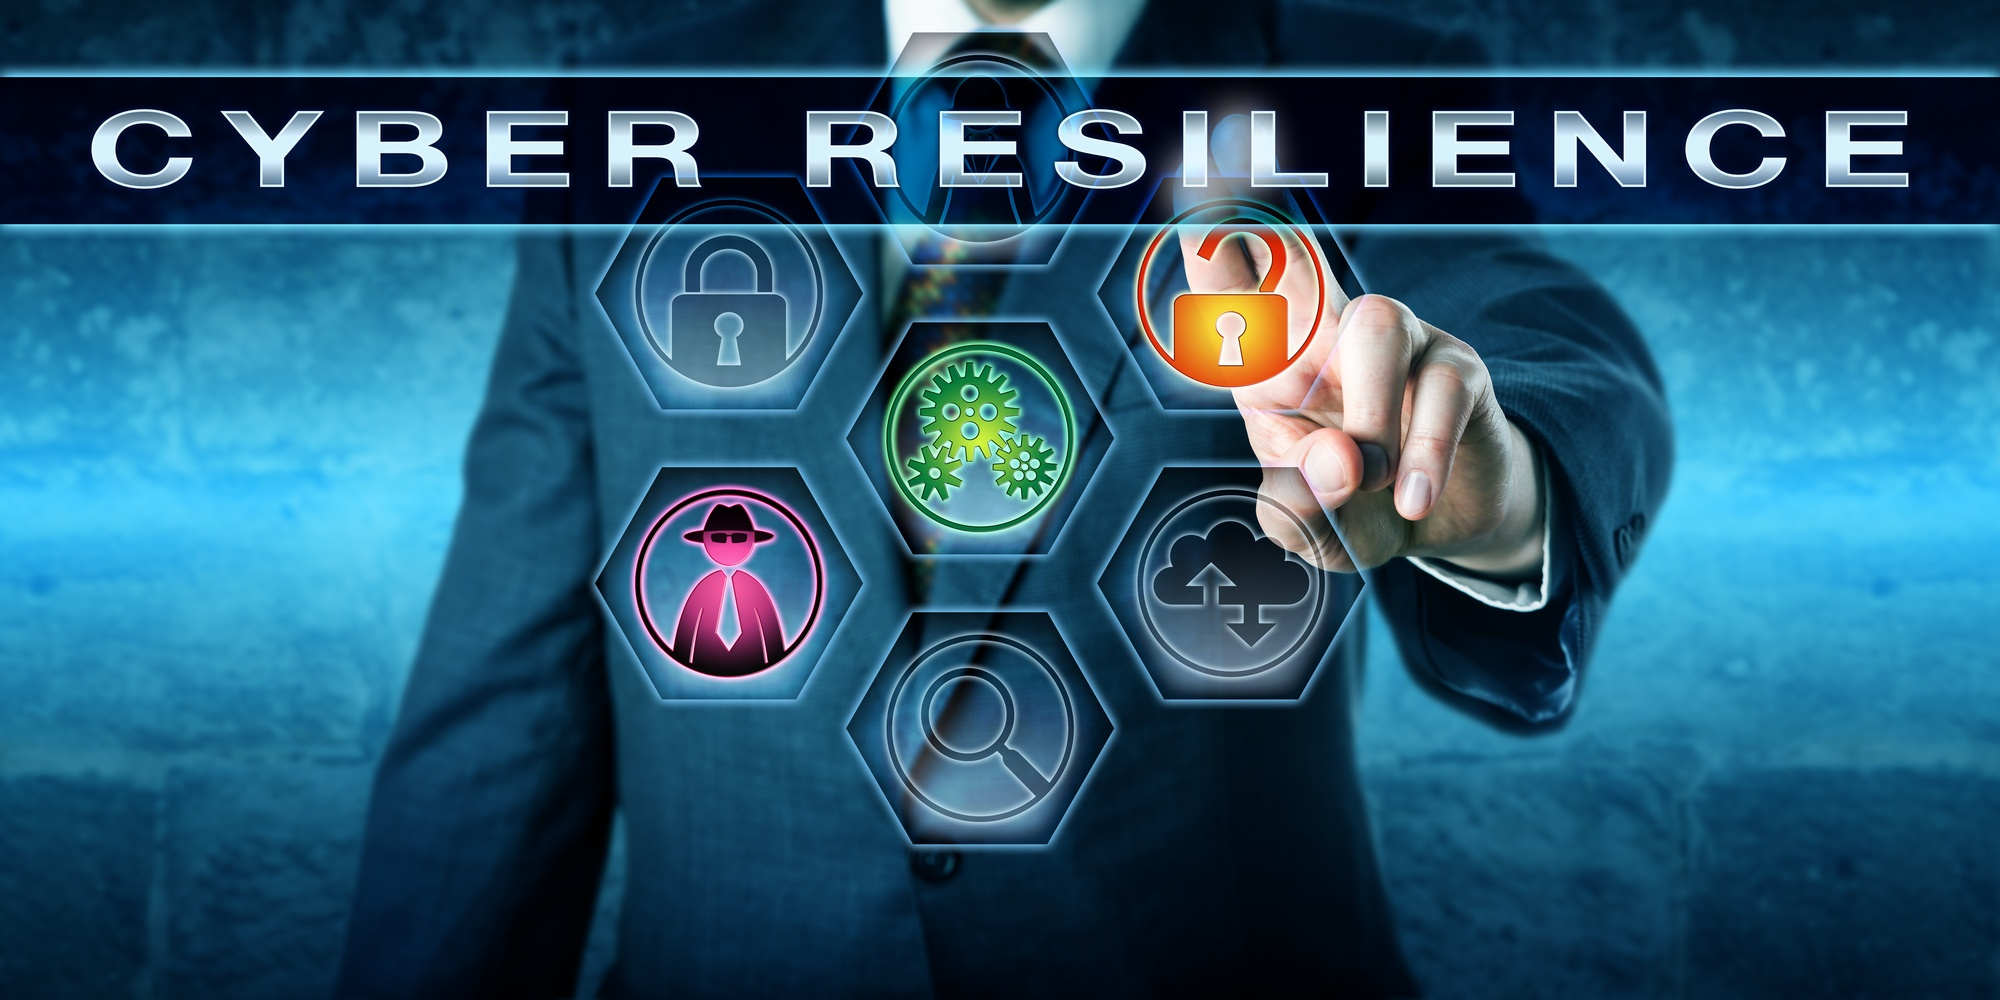 Area cyber resilience & scada security governance